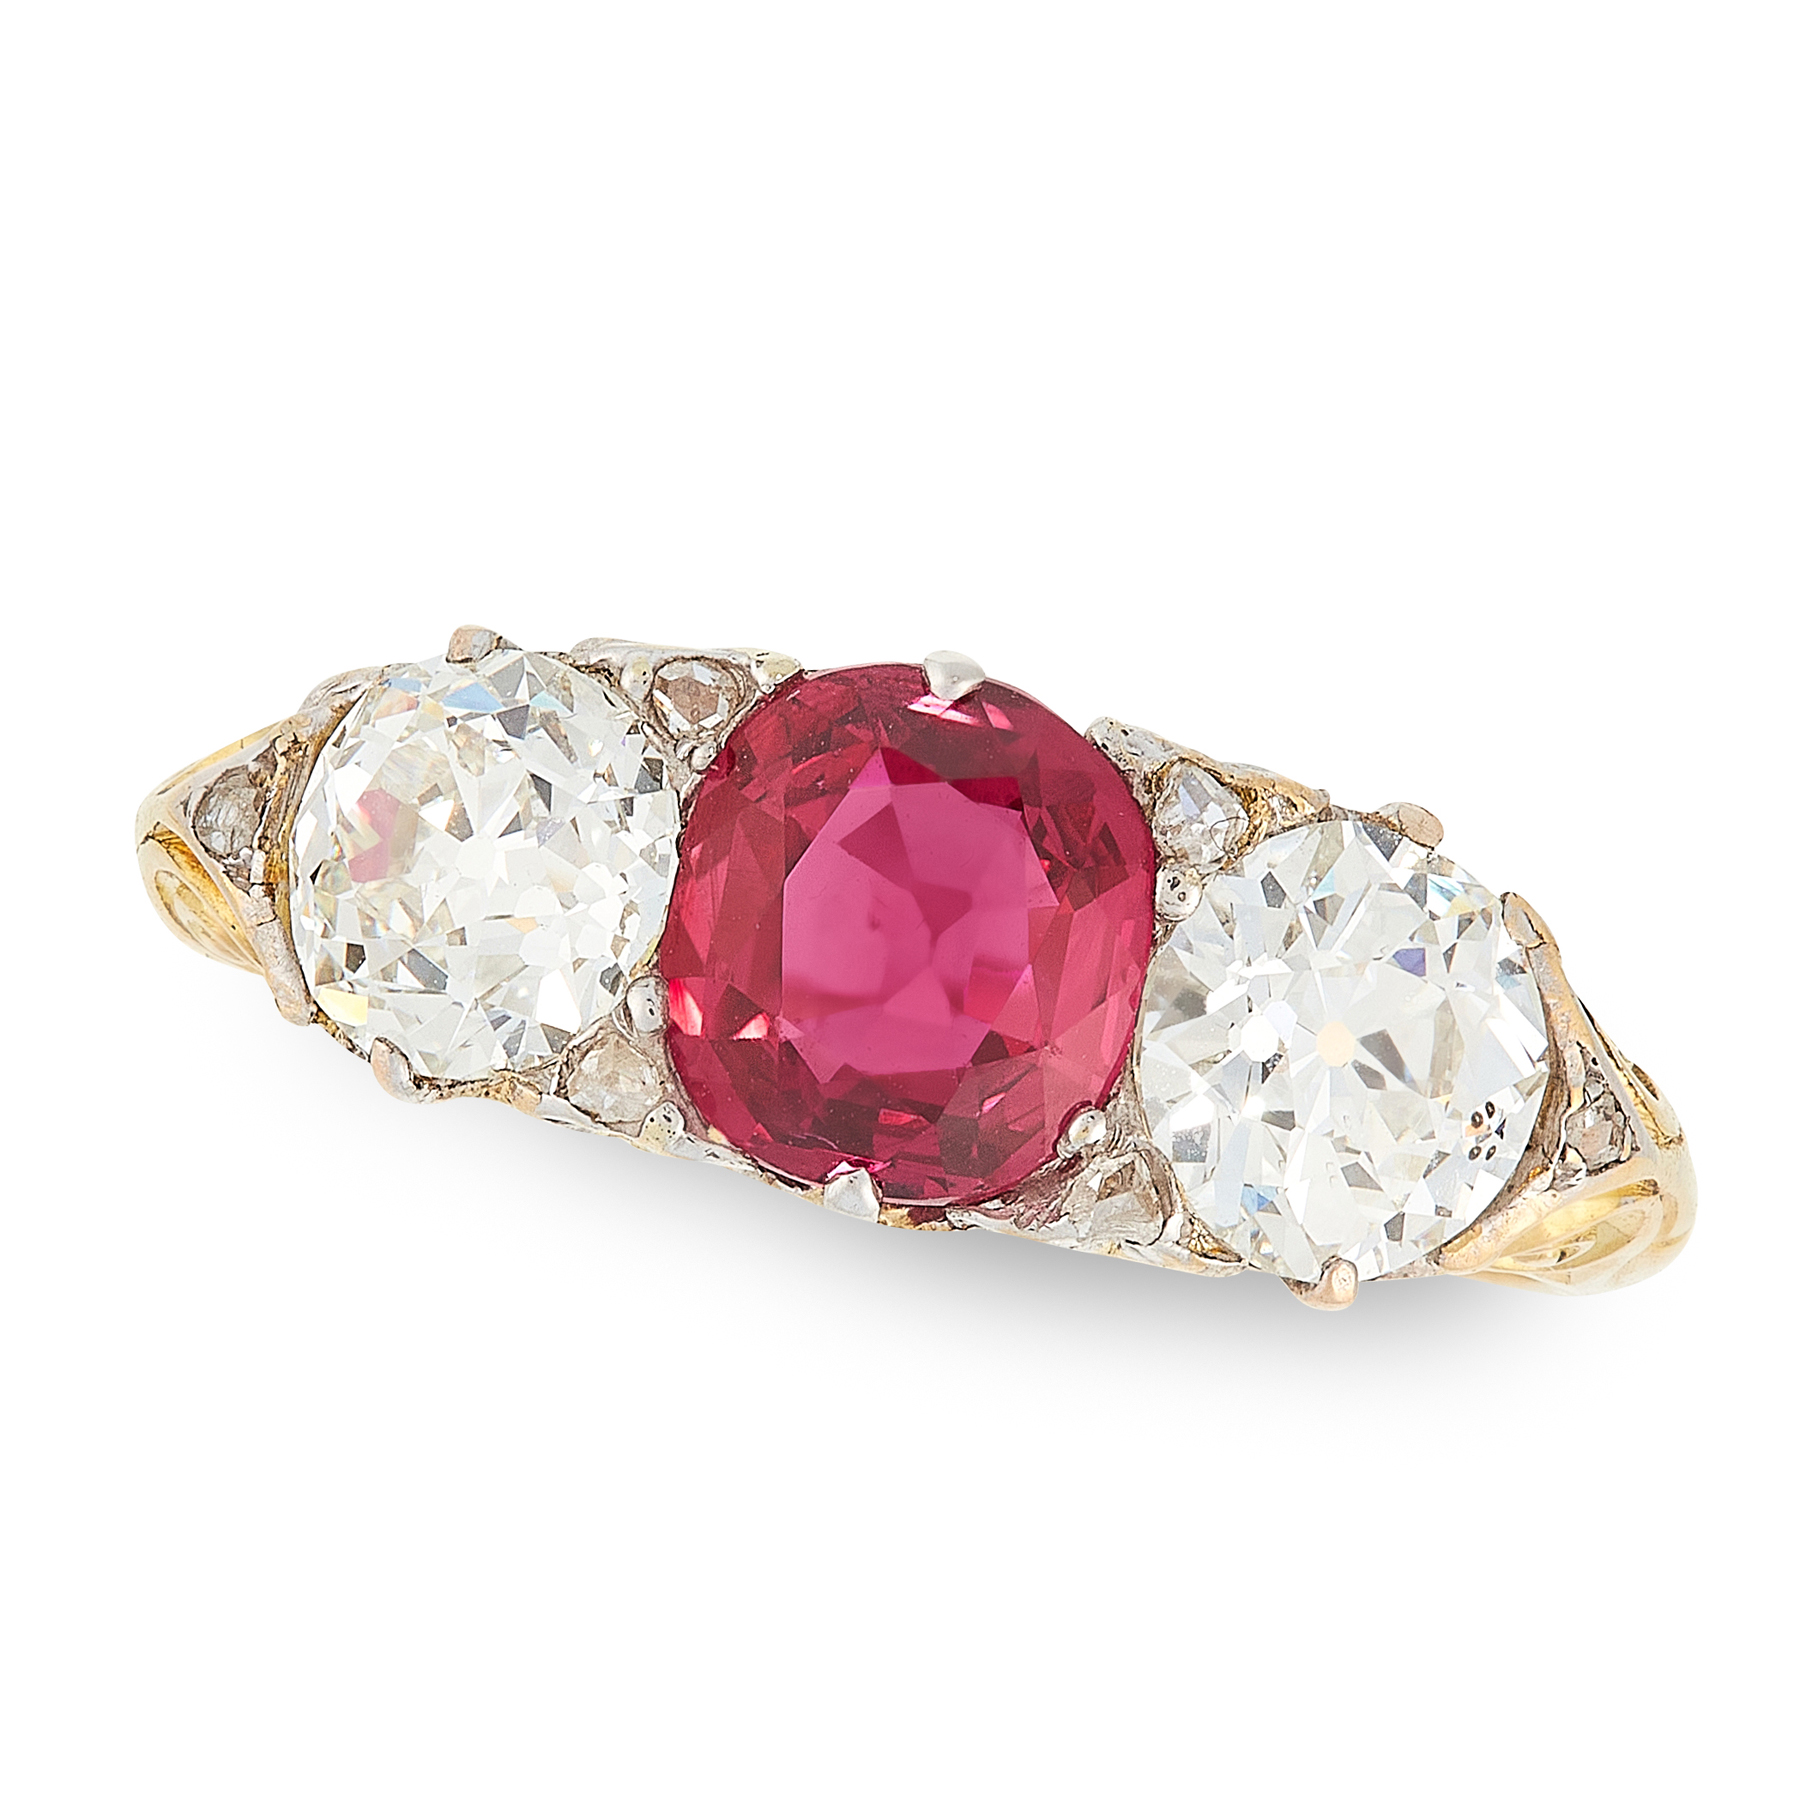 A RUBY AND DIAMOND THREE STONE RING in 18ct yellow gold, set with a cushion cut ruby of 1.12